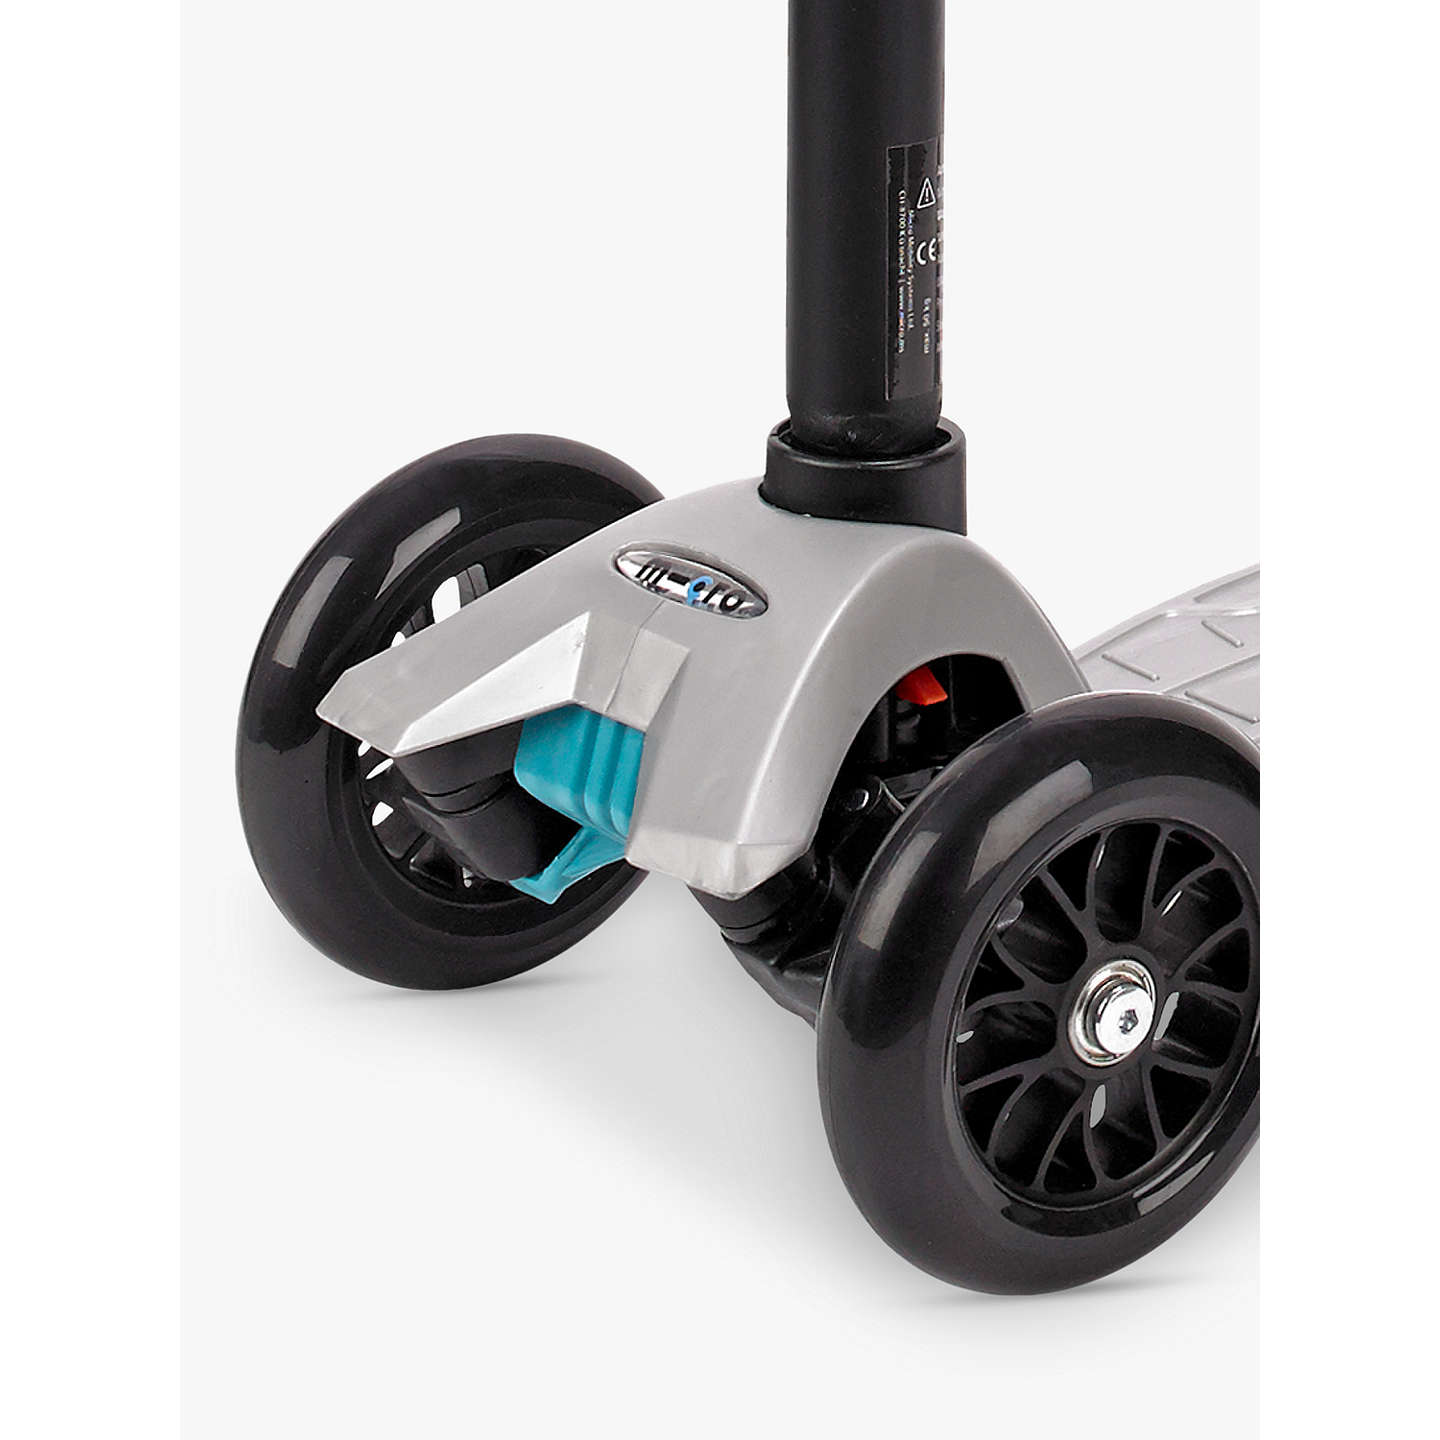 BuyMaxi Micro Scooter, 6-12 years, Silver Online at johnlewis.com